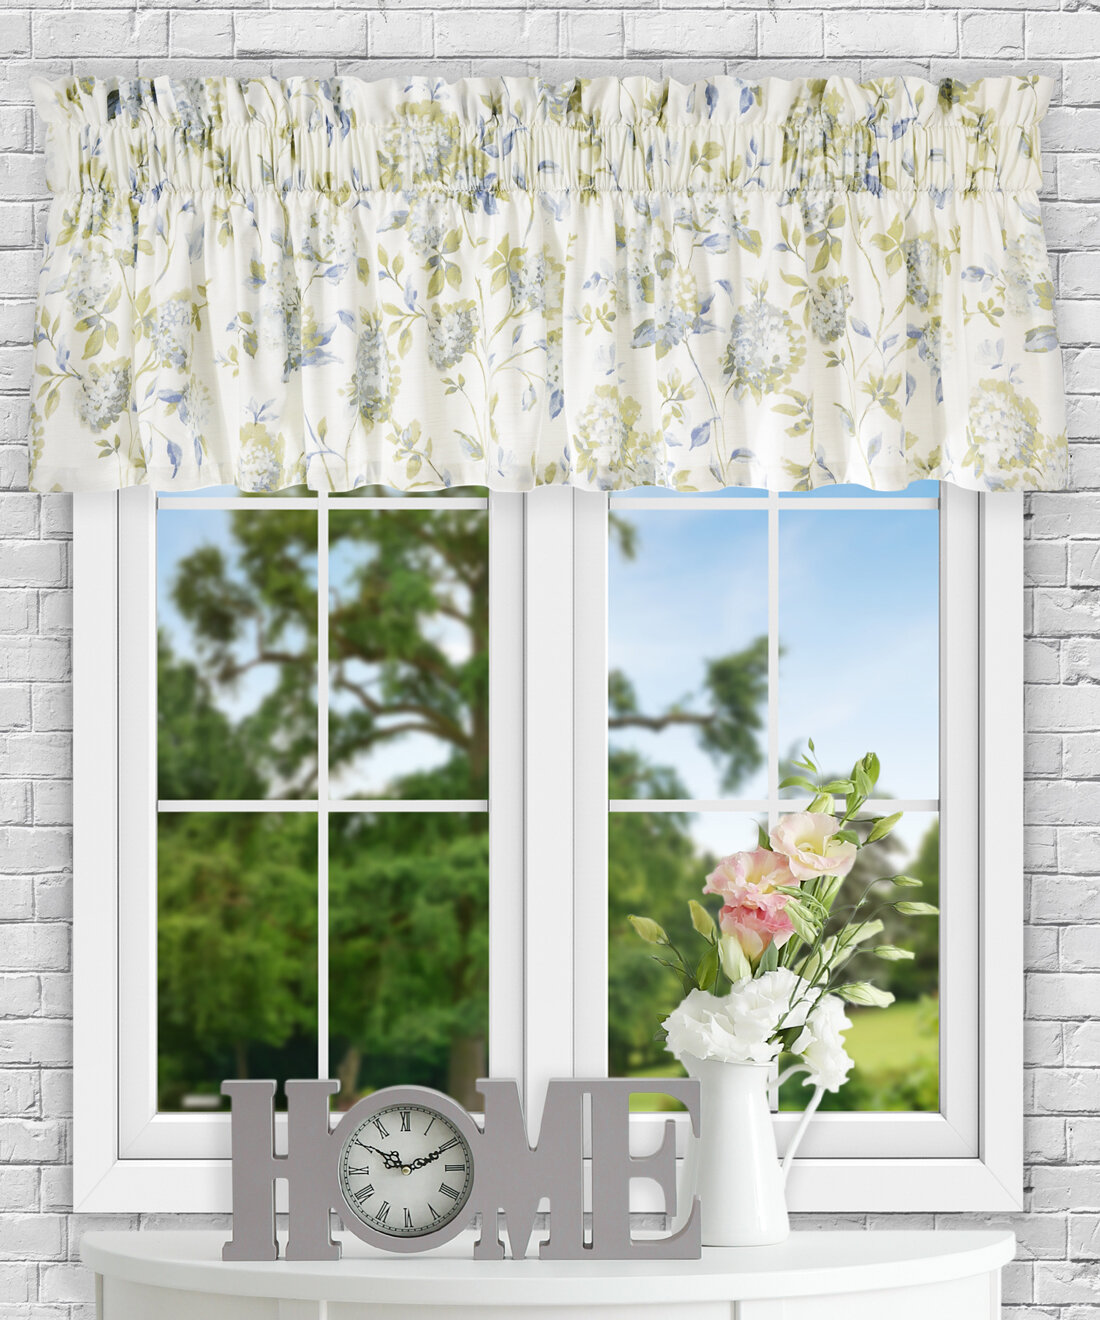 style overlapping swag drapes valance custom order picture with gold ivy p